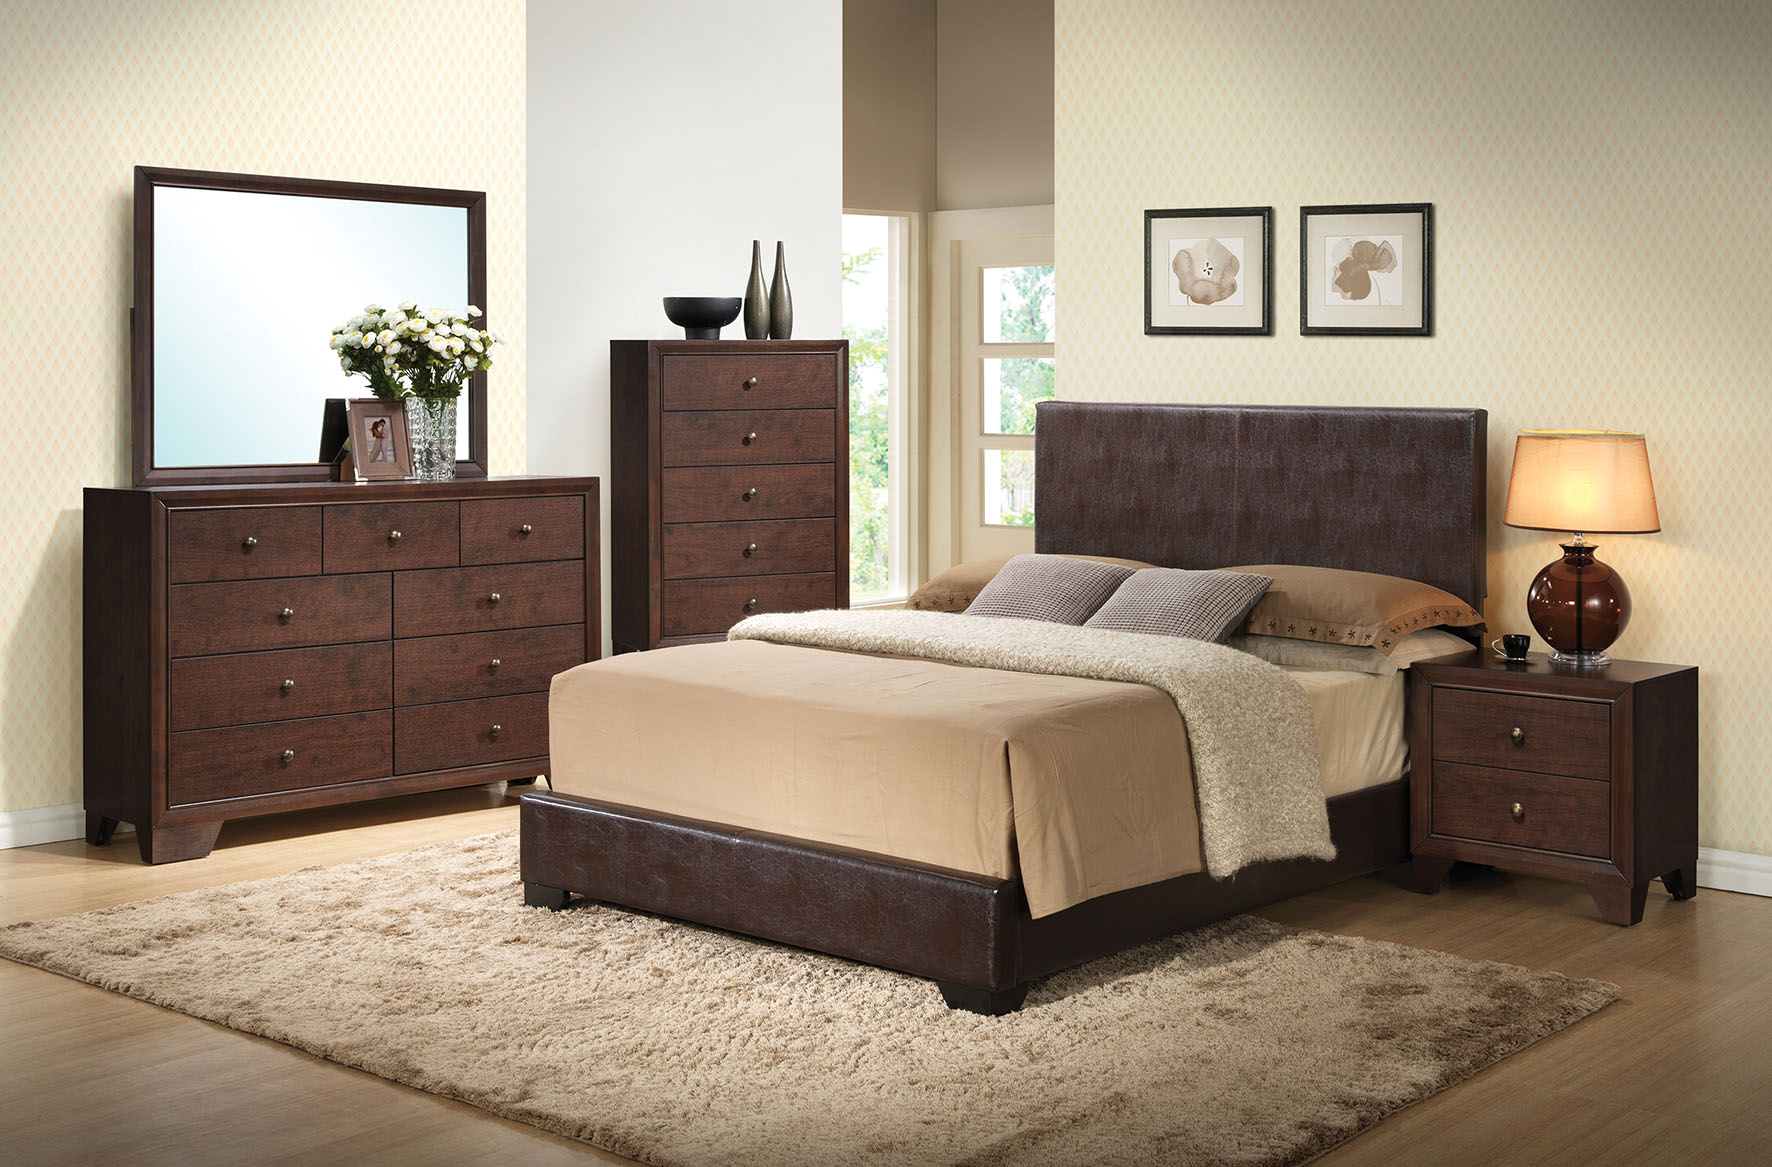 silver bedroom furniture crowdbuild for